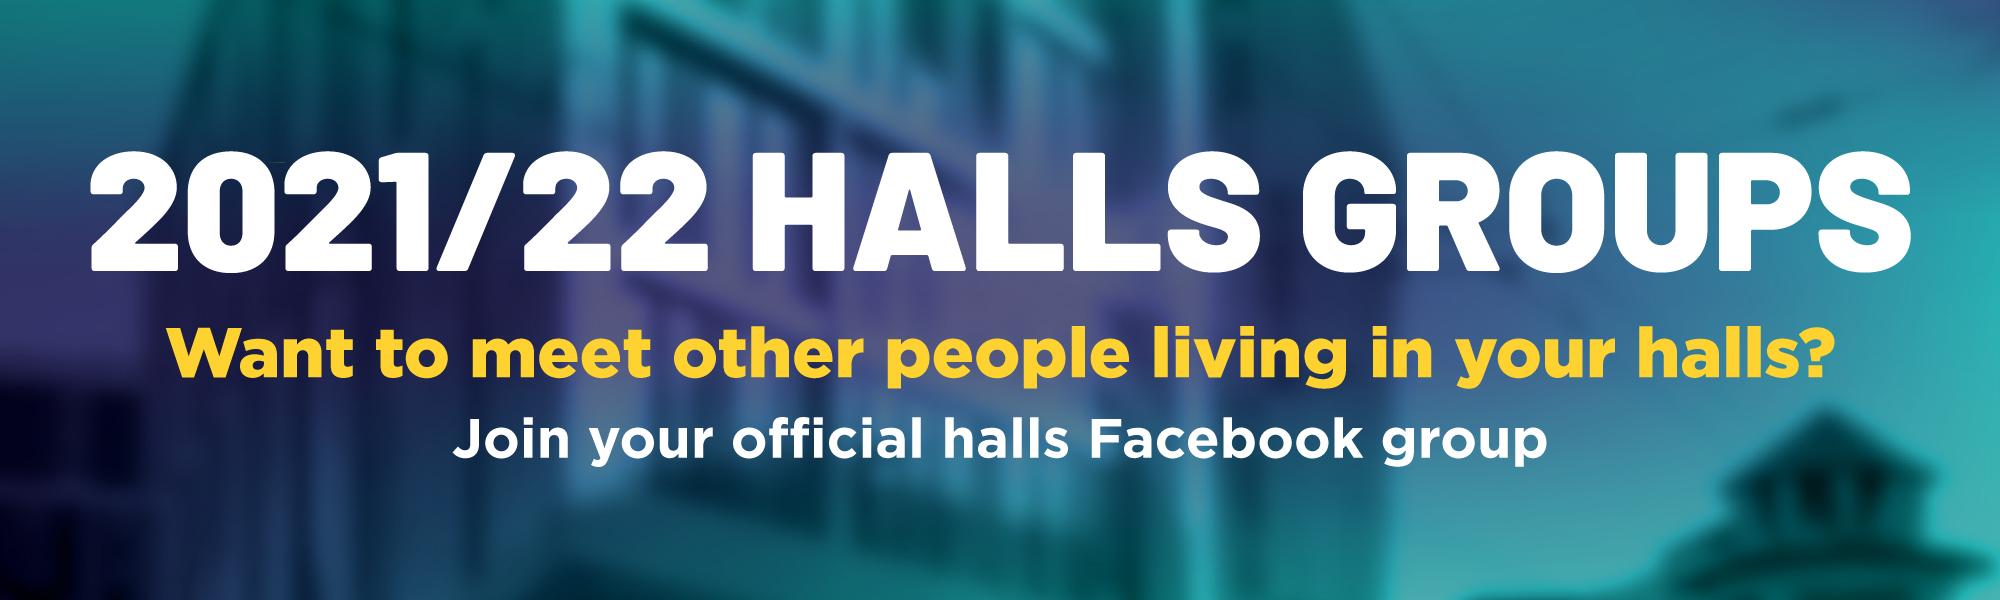 2021/22 Halls groups, want to meet other people living in your halls? Join your official halls Facebook group